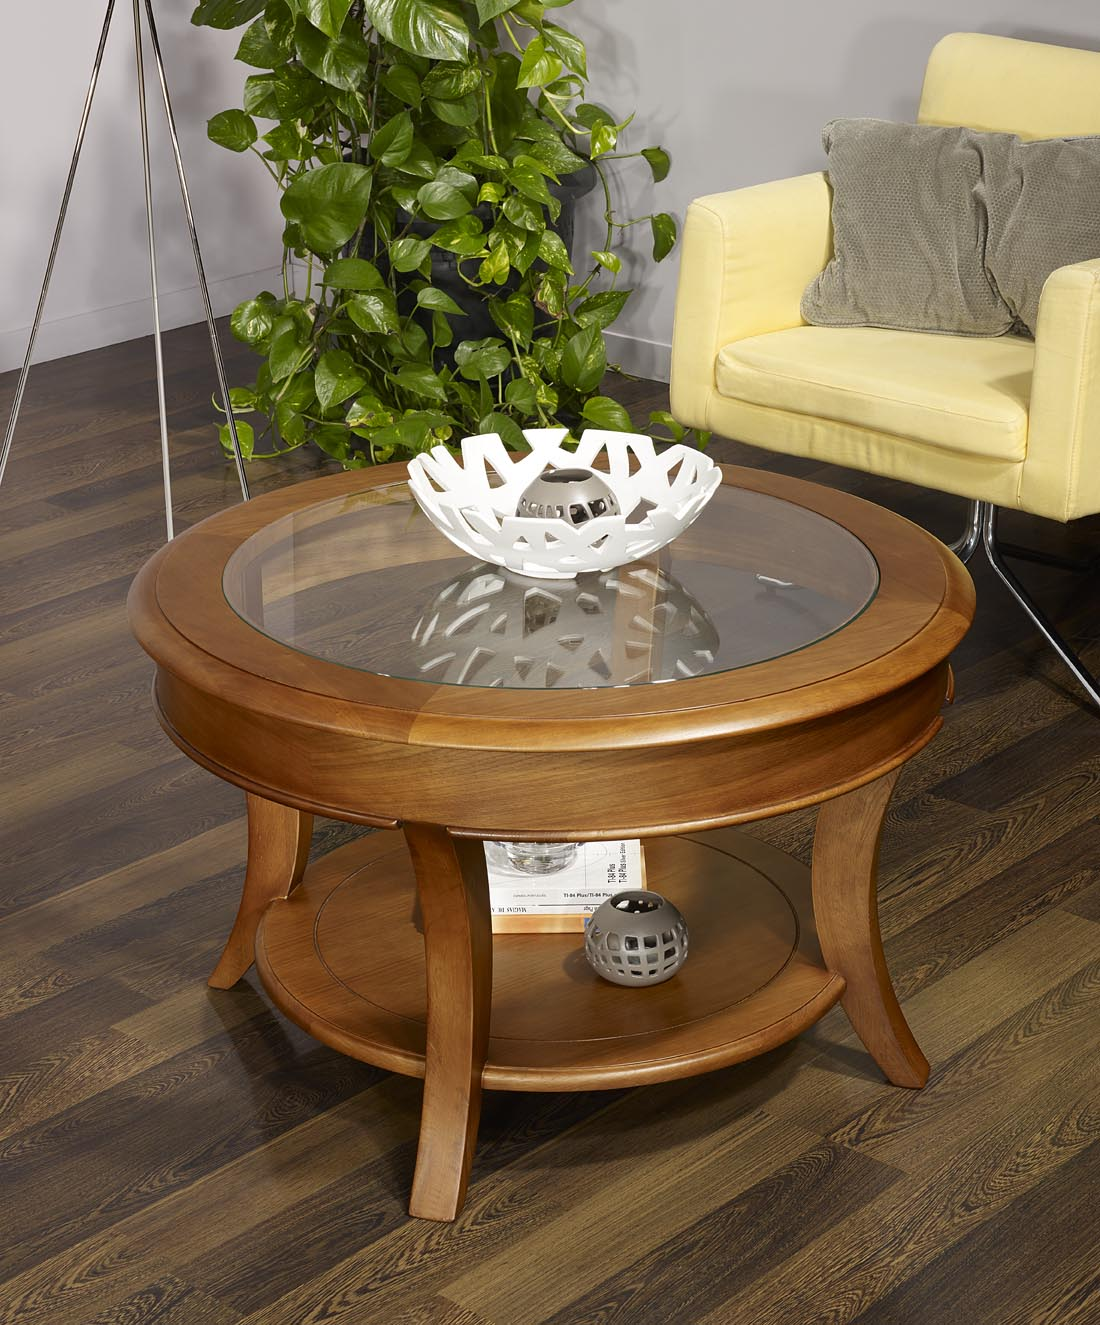 Table basse ronde bois brut